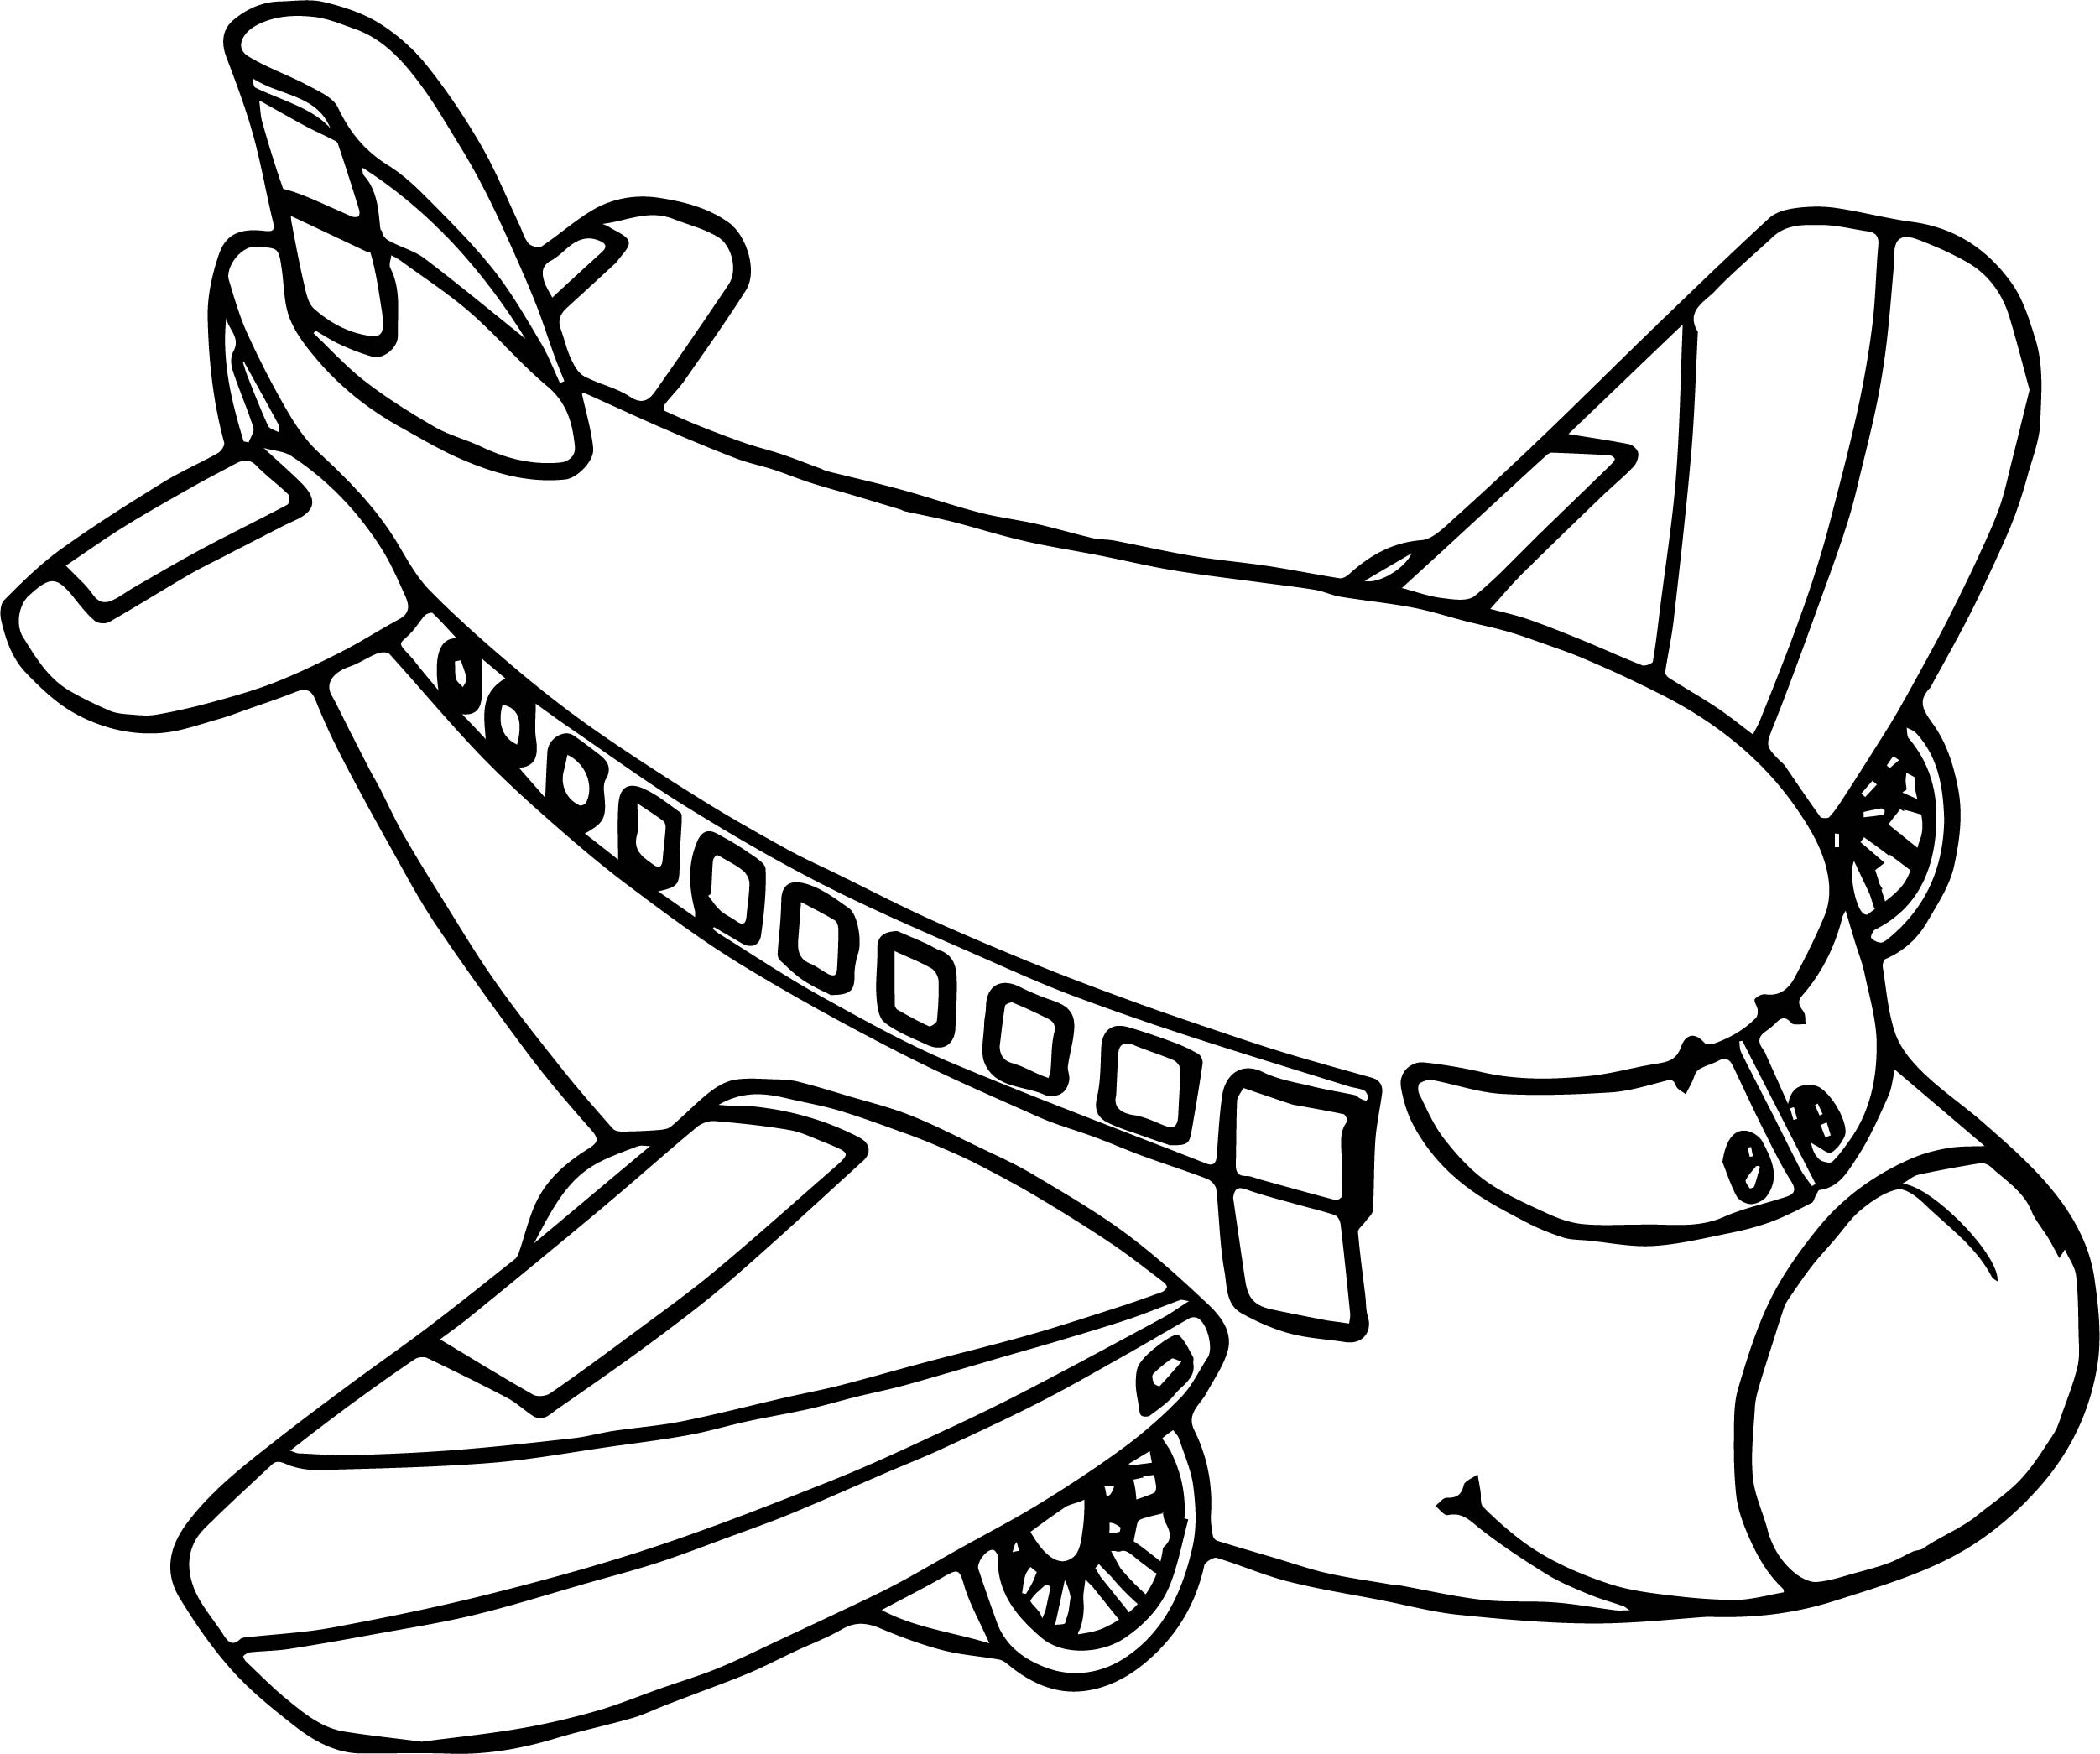 2503x2091 Airplane Cartoon Coloring Page Wecoloringpage